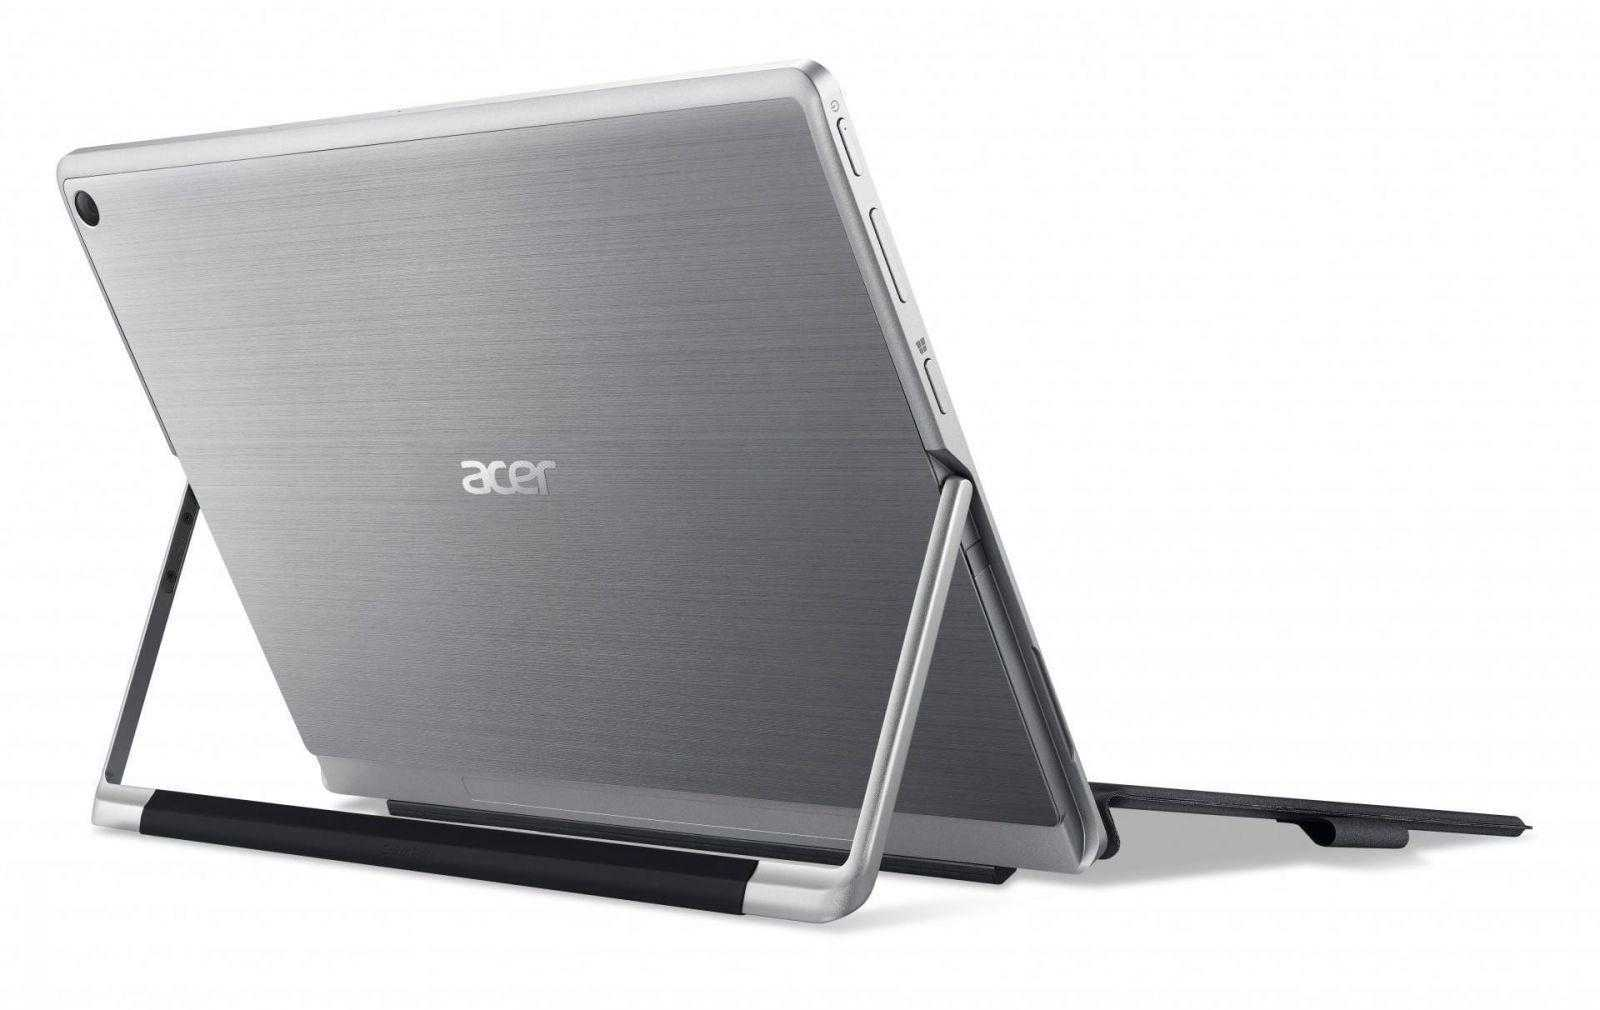 Switch Alpha 12 SA5 271 02 - Acer выпустила ноутбуки Aspire S 13 и Aspire Switch 12 Alpha